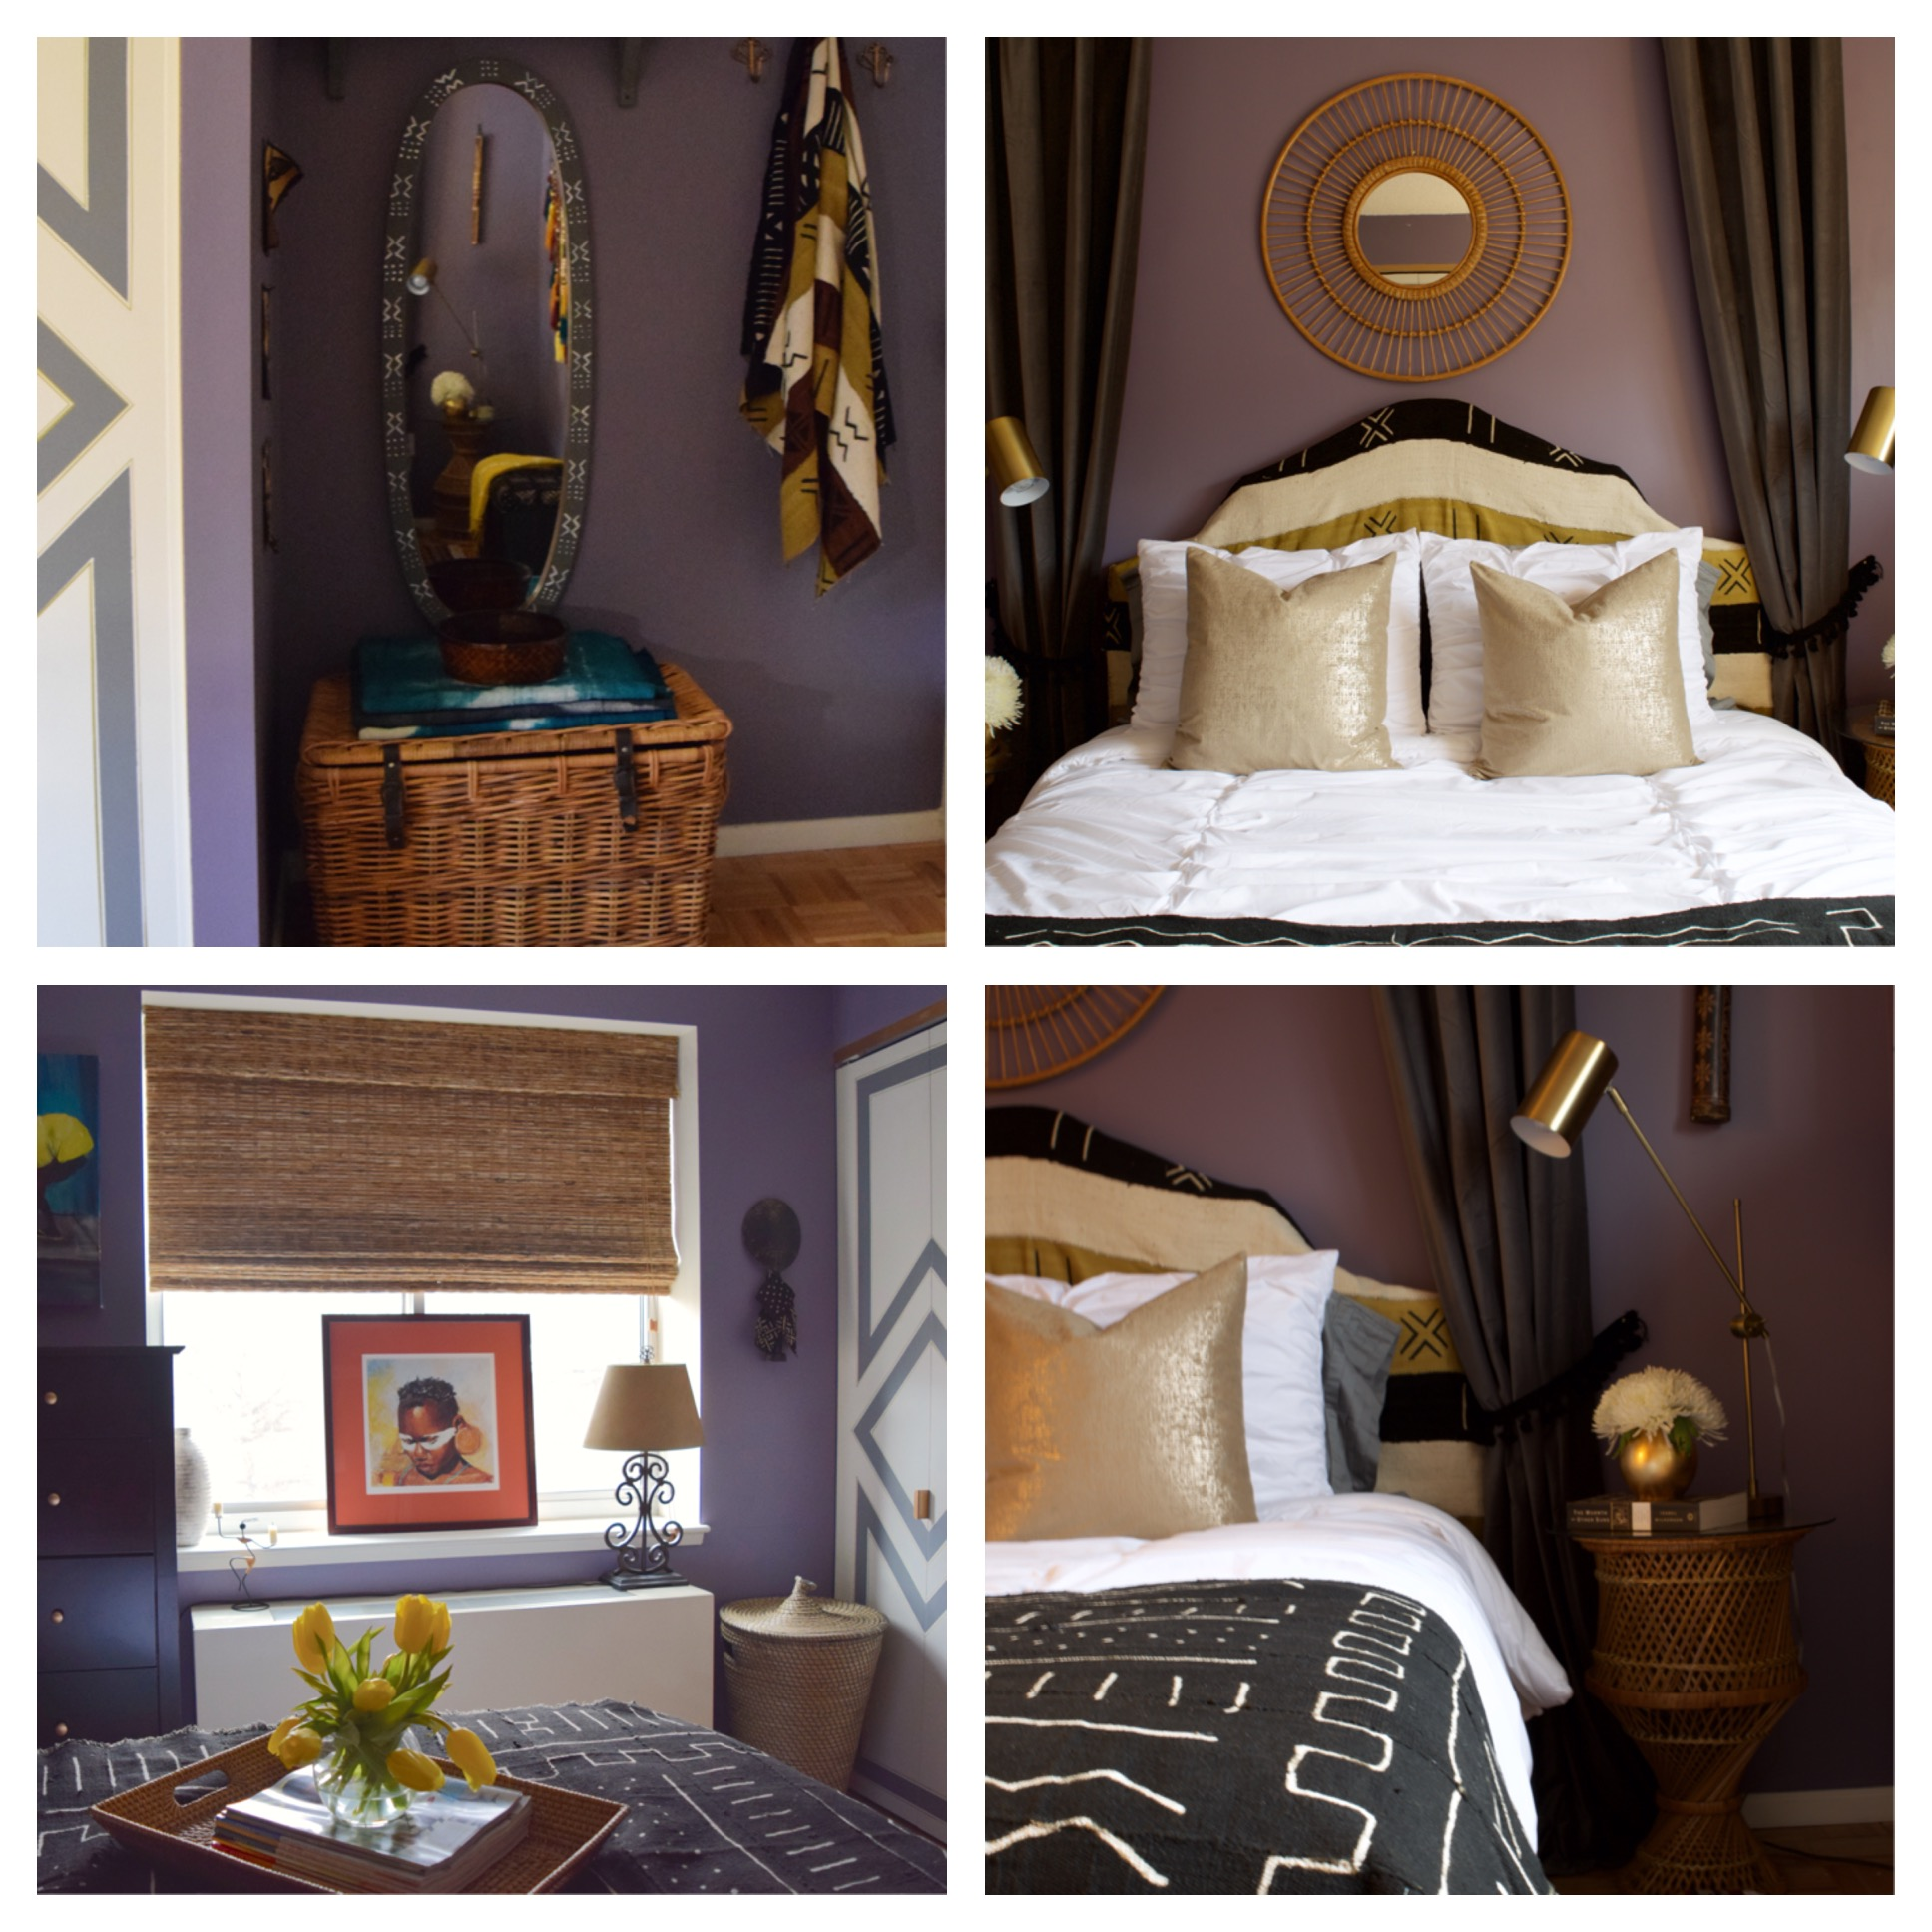 Top Left:   Original rattan trunk in an area that before was dead and unused space.  Now the area has storage, a shelf for art and books (above the mirror), and hooks for hanging coats, bags or clothes.  In the before pics only the mirror was there.  Top Right:  Cool rattan mirror   Bottom Left:   Tray, basket and blinds bringing in more of that rattan, bamboo look.   Bottom Right:  Rattan side tables